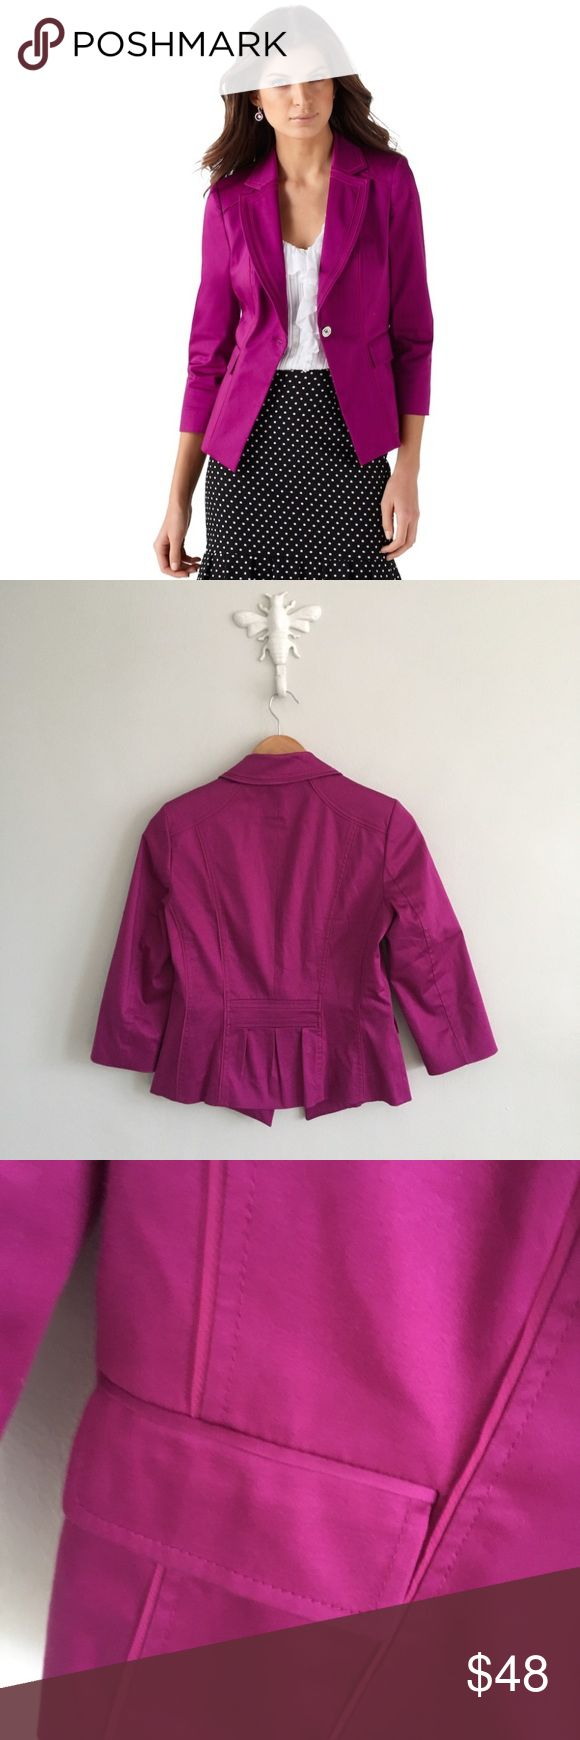 White House Black Market Berry Purple Blazer Gently pre-loved with no rips or stains. See all pictures for an accurate description of condition. White House Black Market Jackets & Coats Blazers